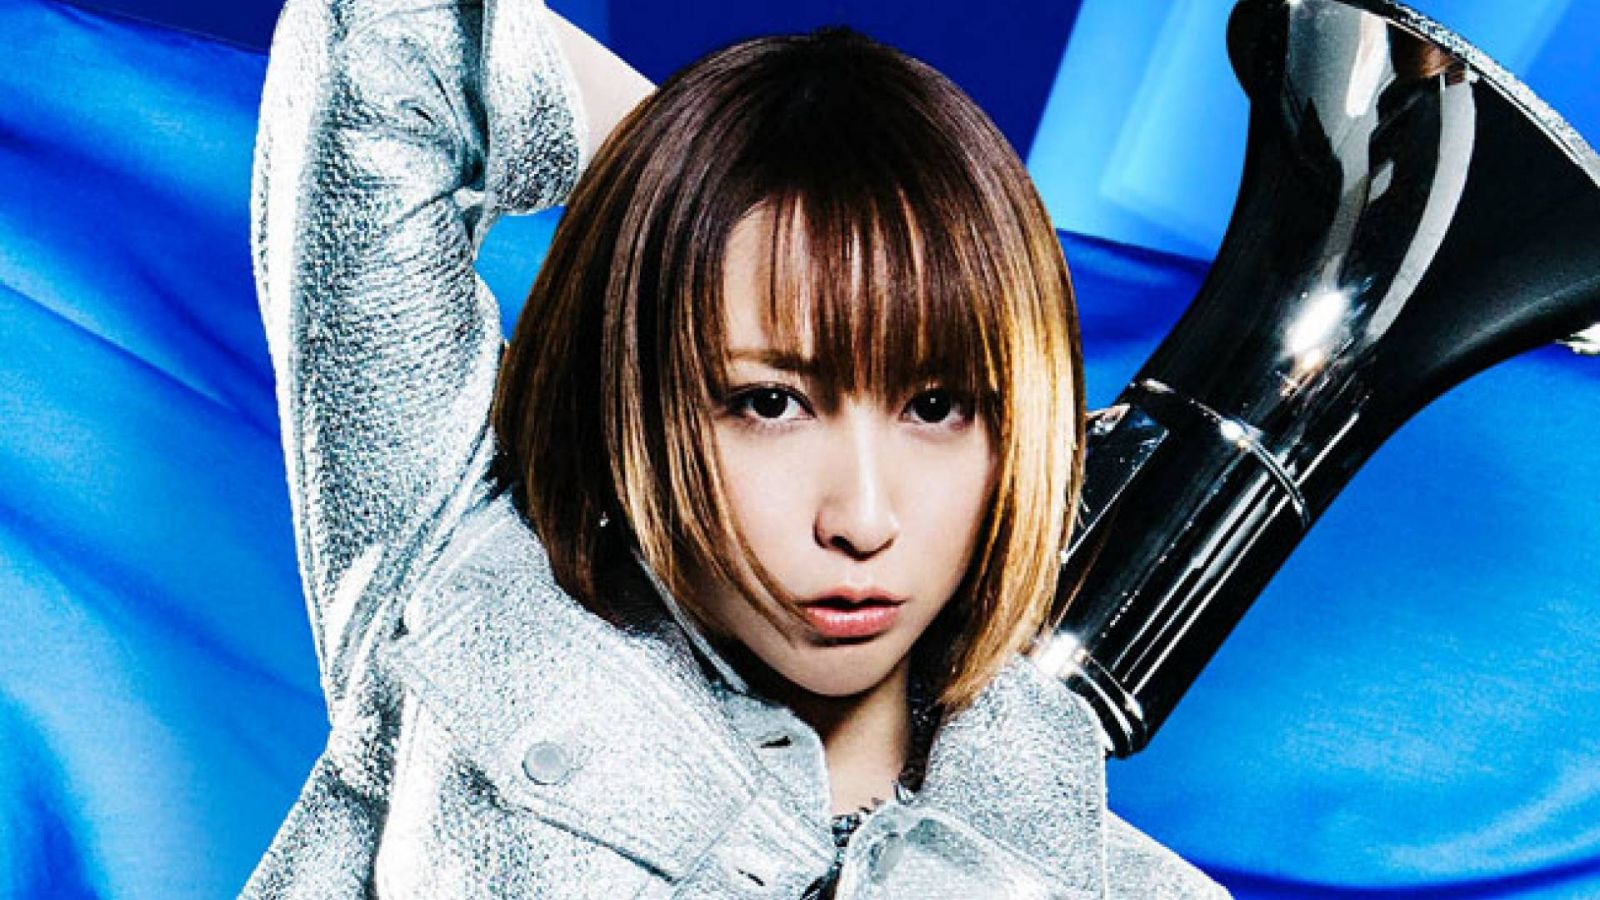 Nouveau single d'Eir Aoi © SME Records Inc. All rights reserved.